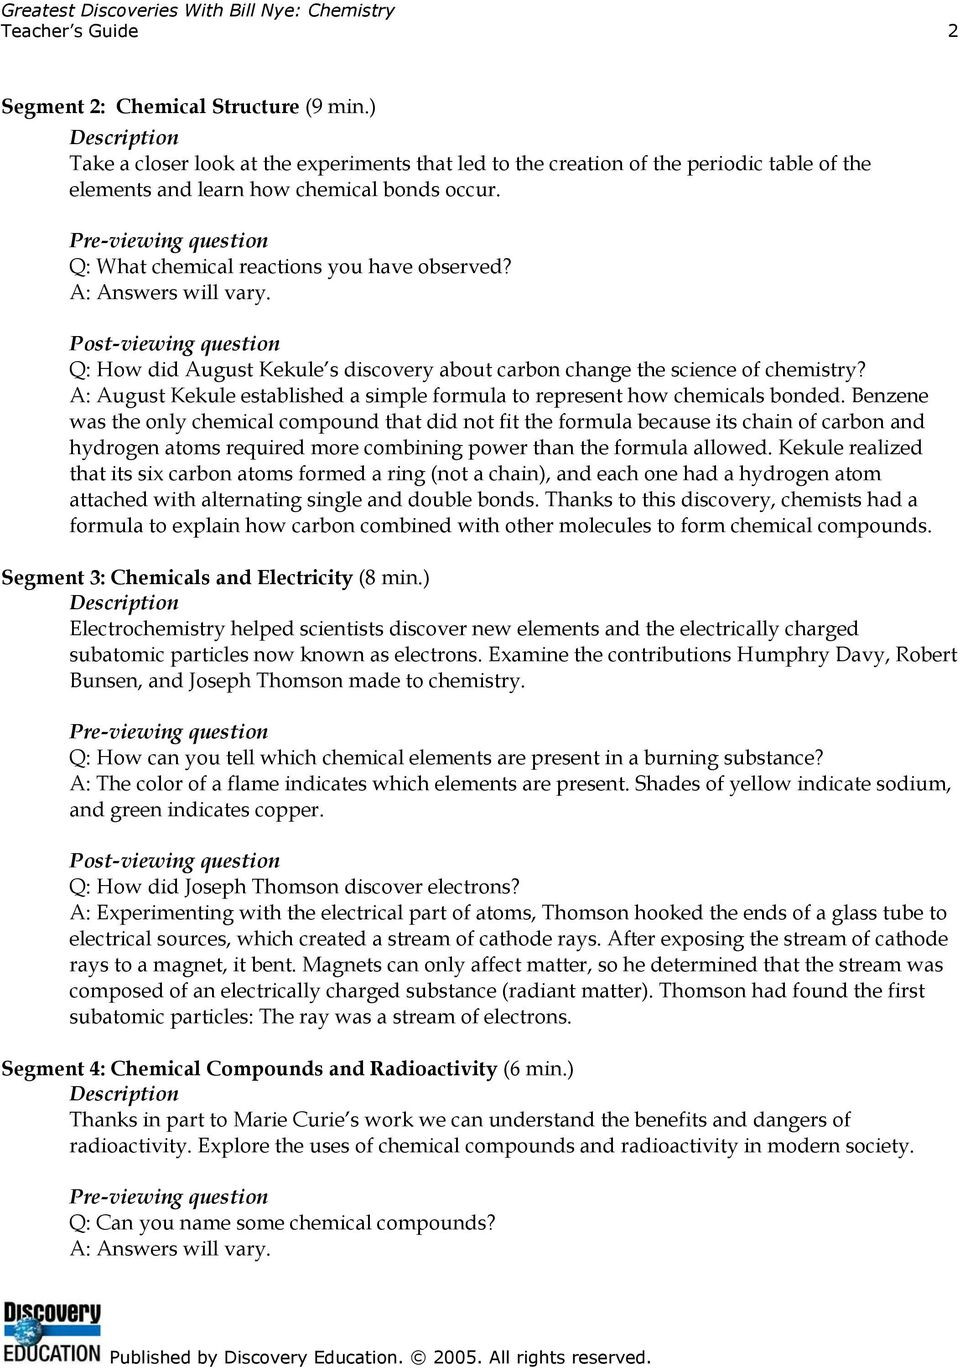 Bill Nye Chemical Reactions Worksheet Greatest Discoveries with Bill Nye Chemistry Teacher S